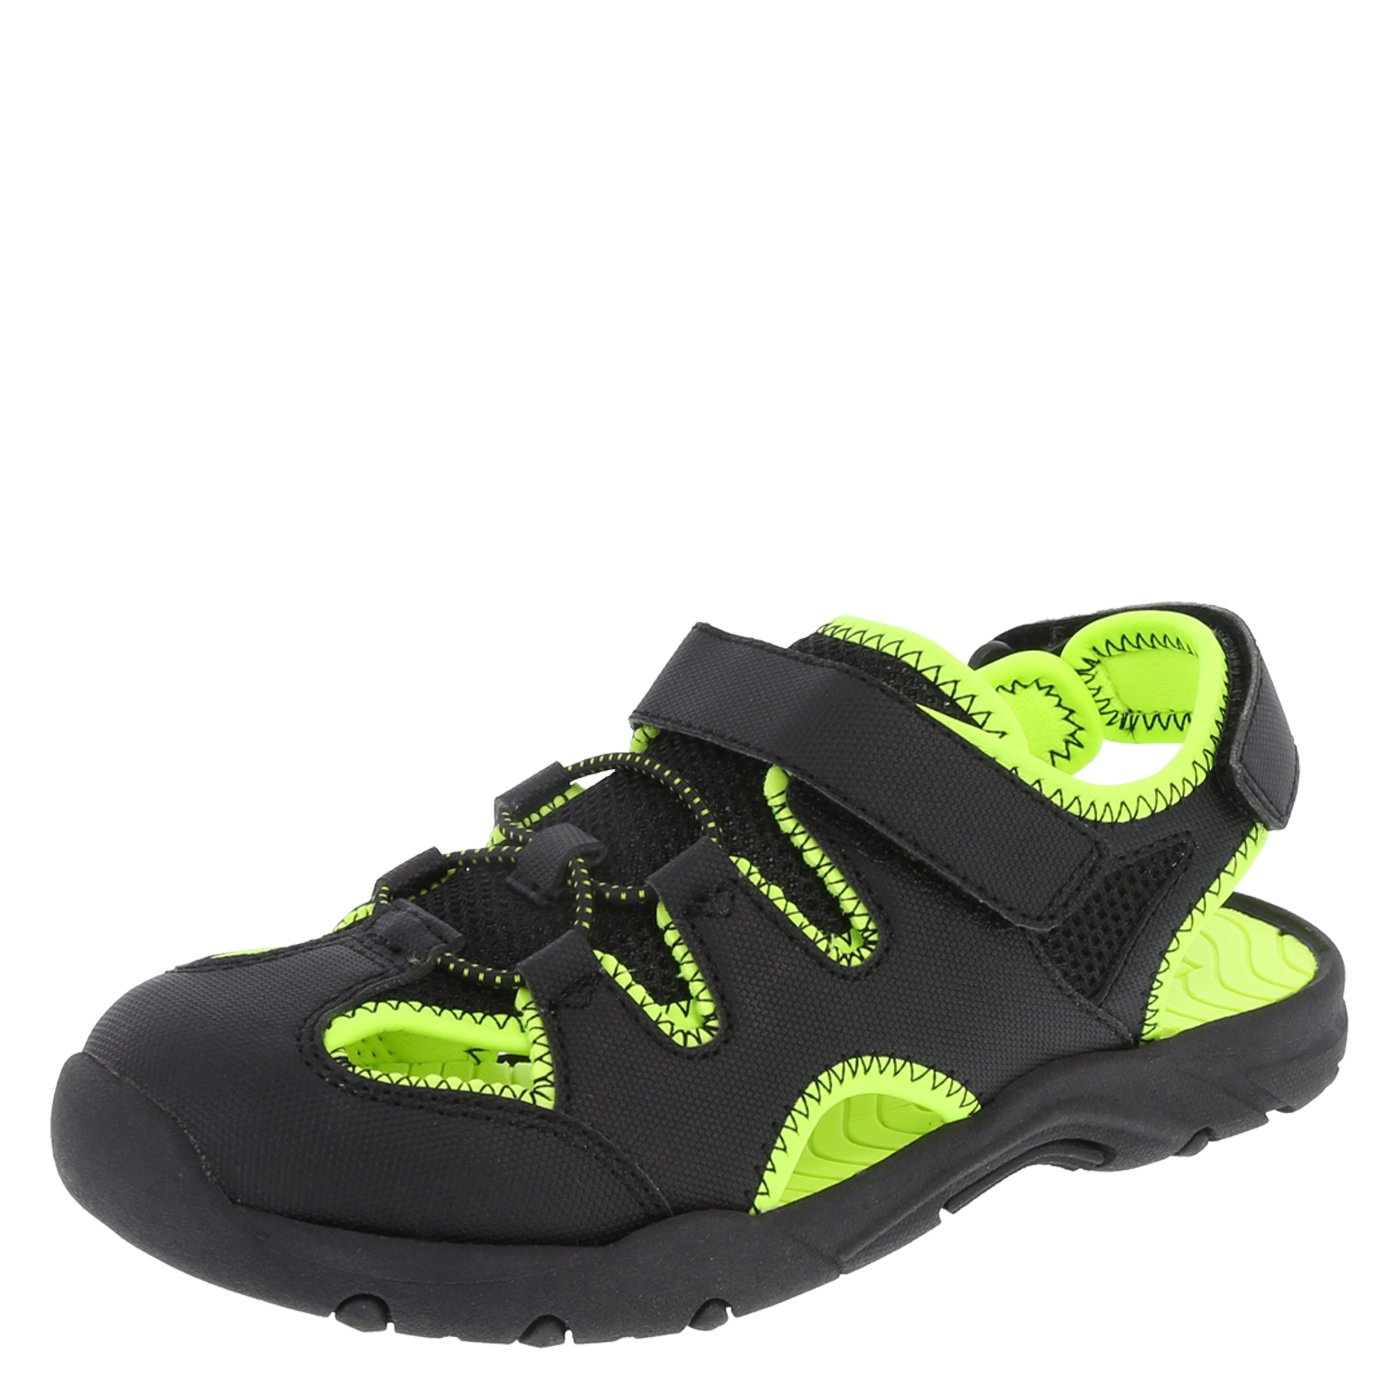 effa9d66ea27d Rugged Outback Boys' Sport Fisherman